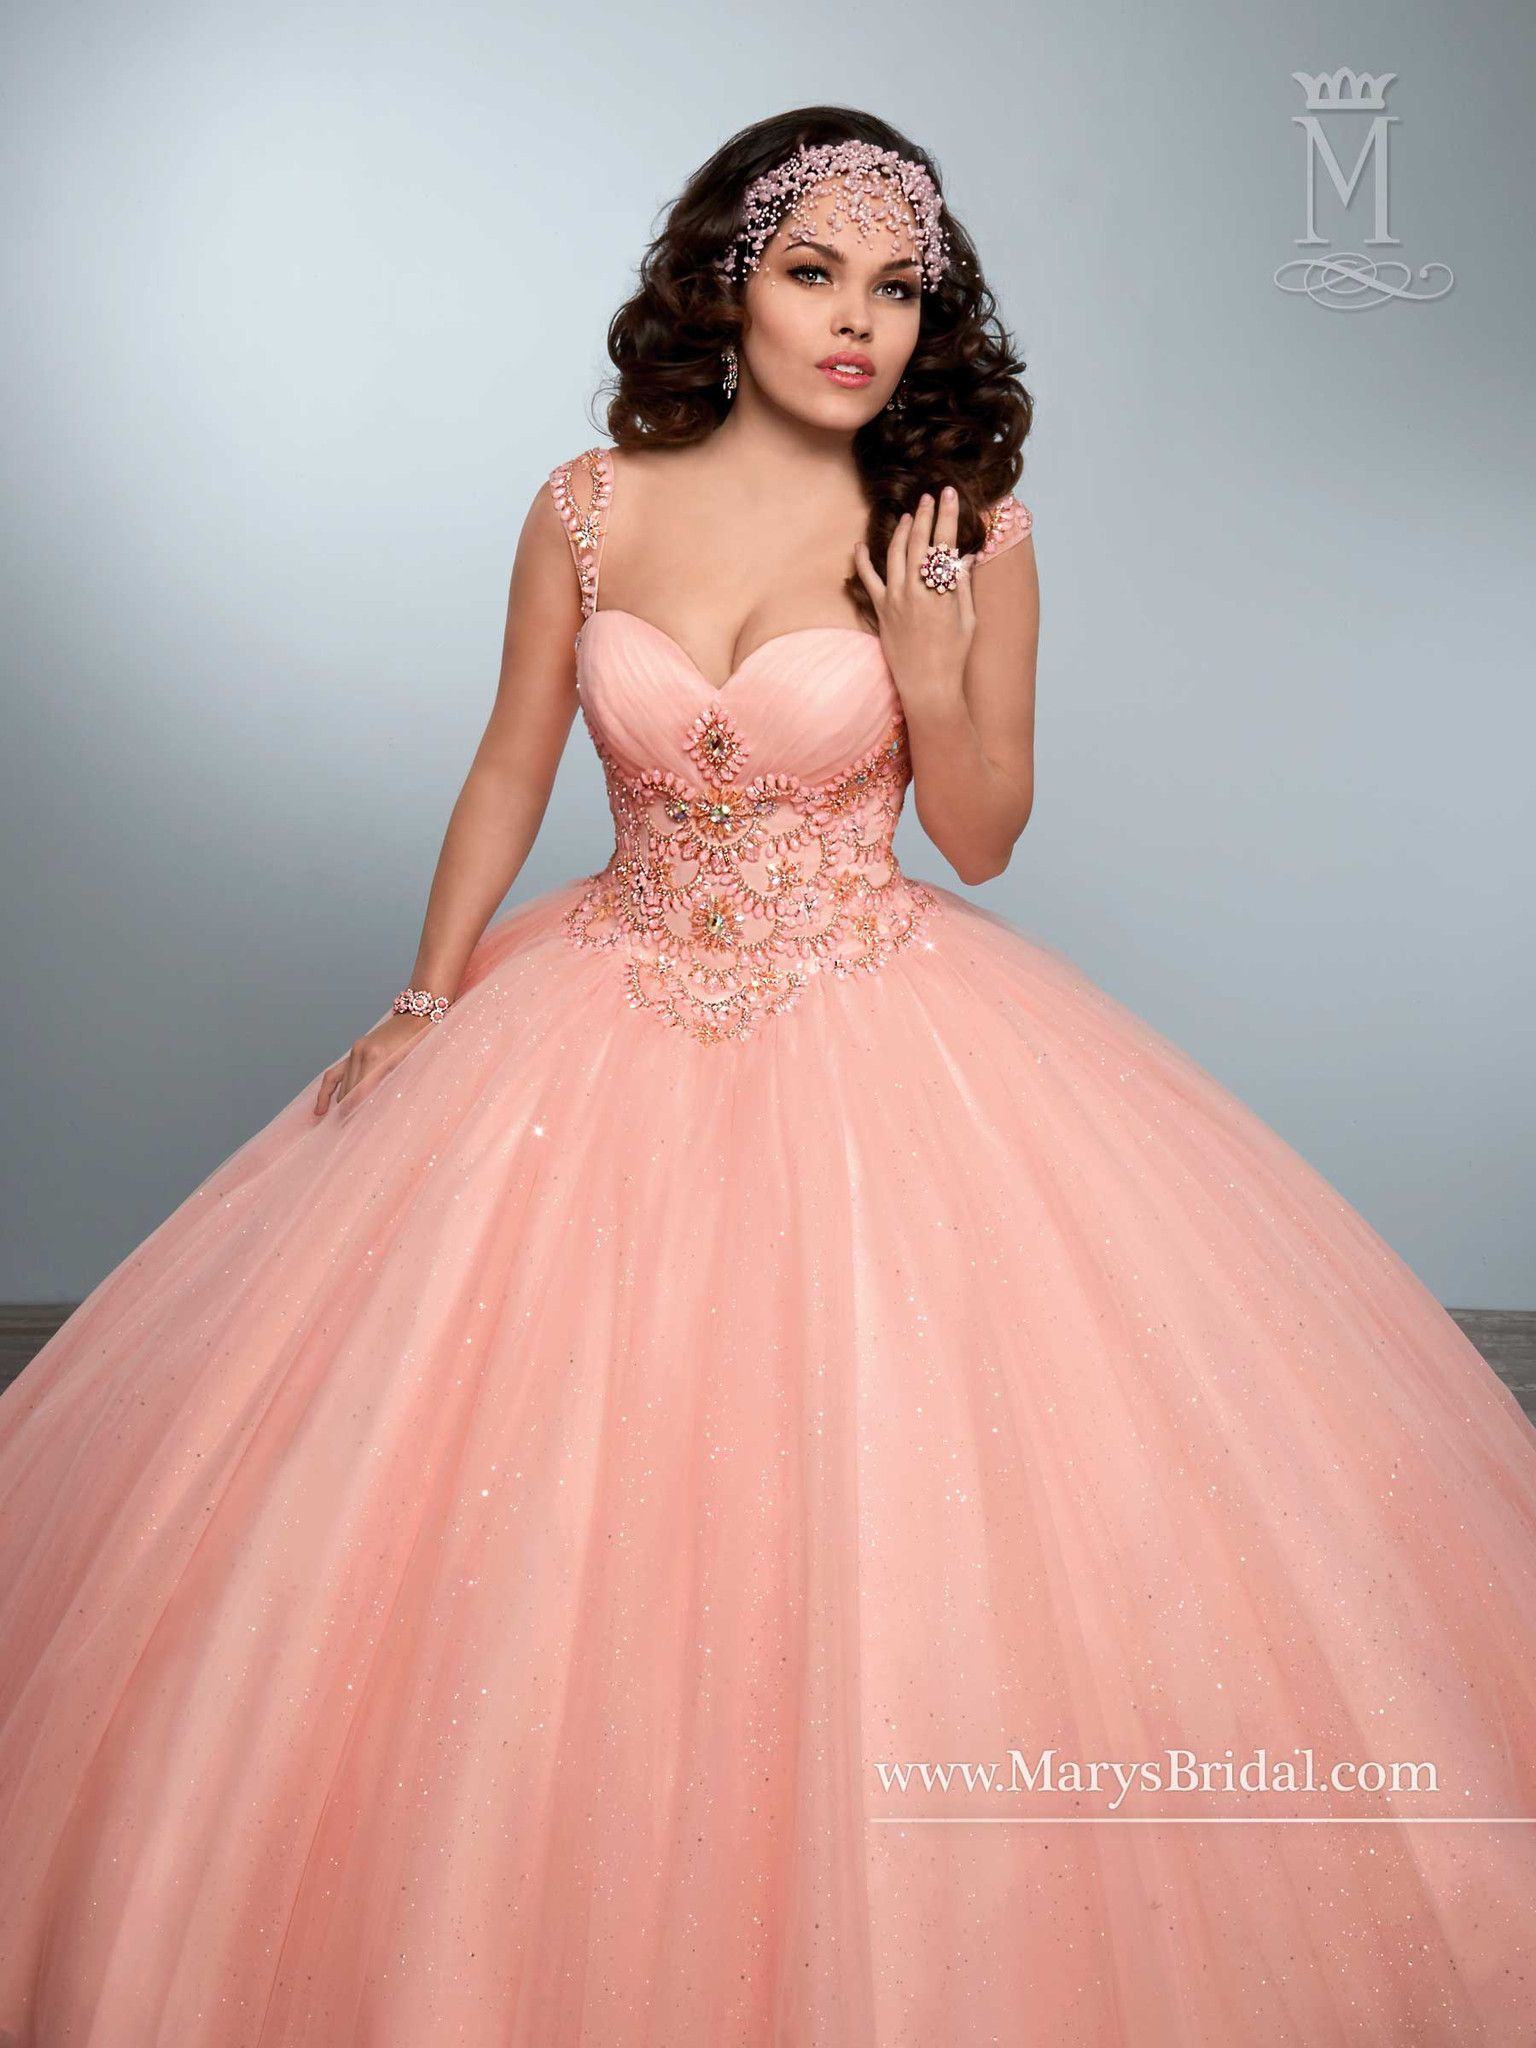 Mary\'s Bridal Princess Collection Quinceanera Dress Style 4Q436